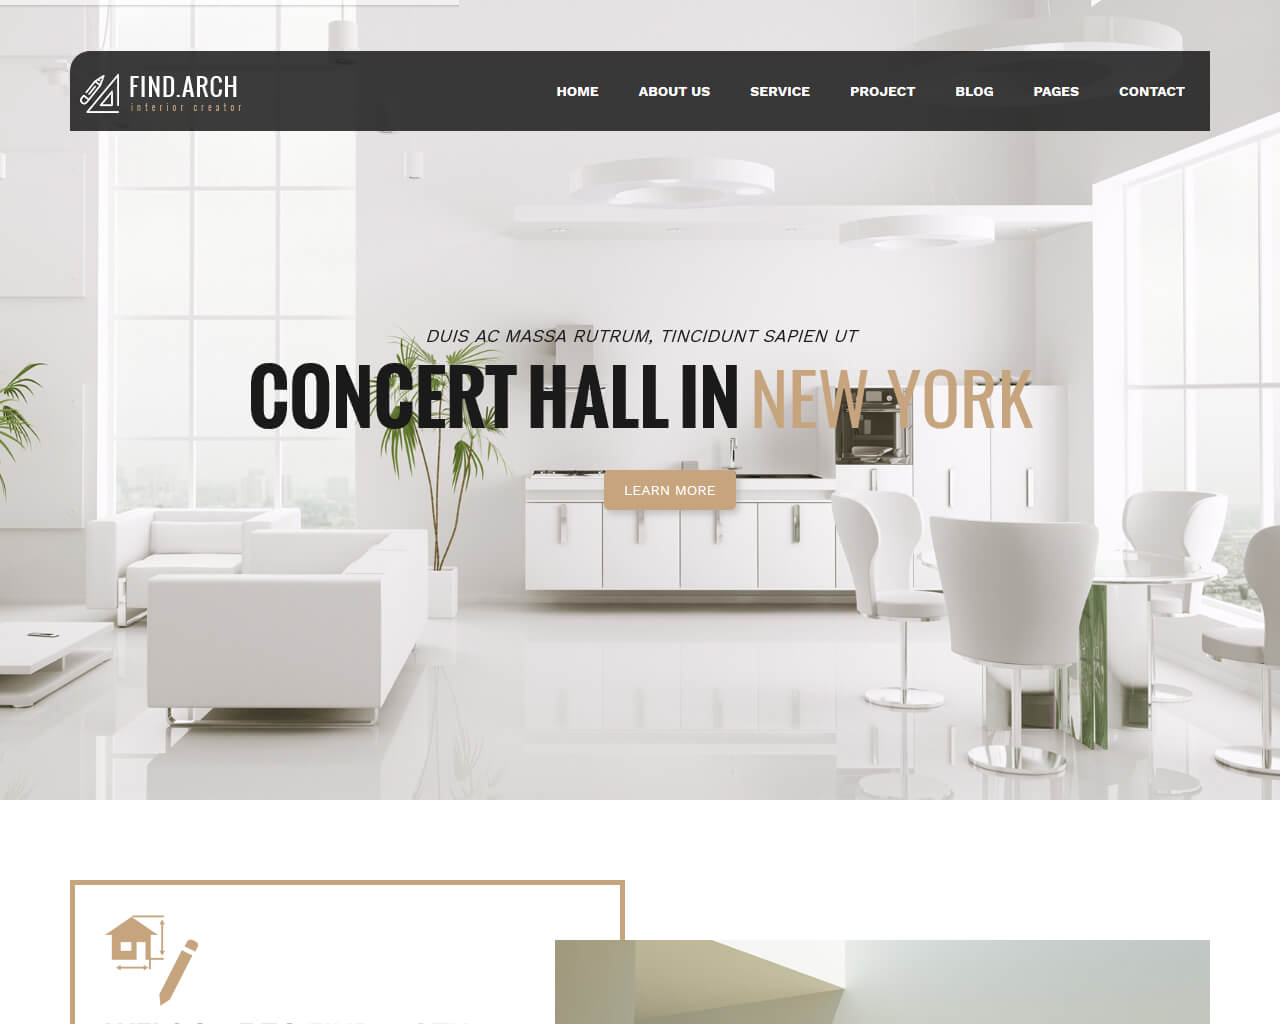 Find.ARC Website Template